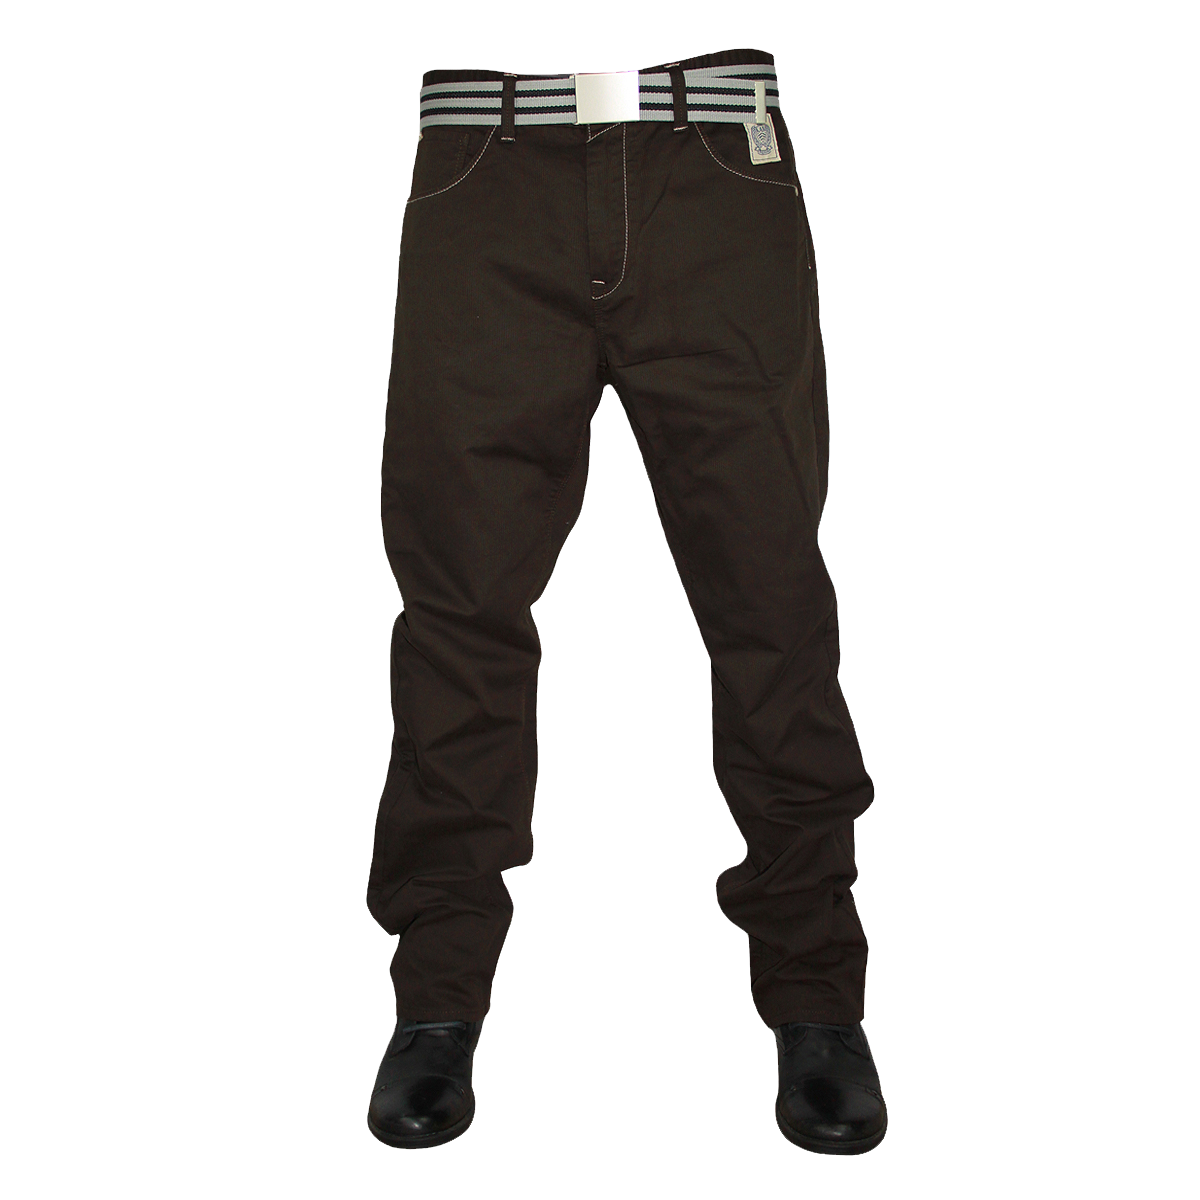 Trouser PNG Transparent Images.